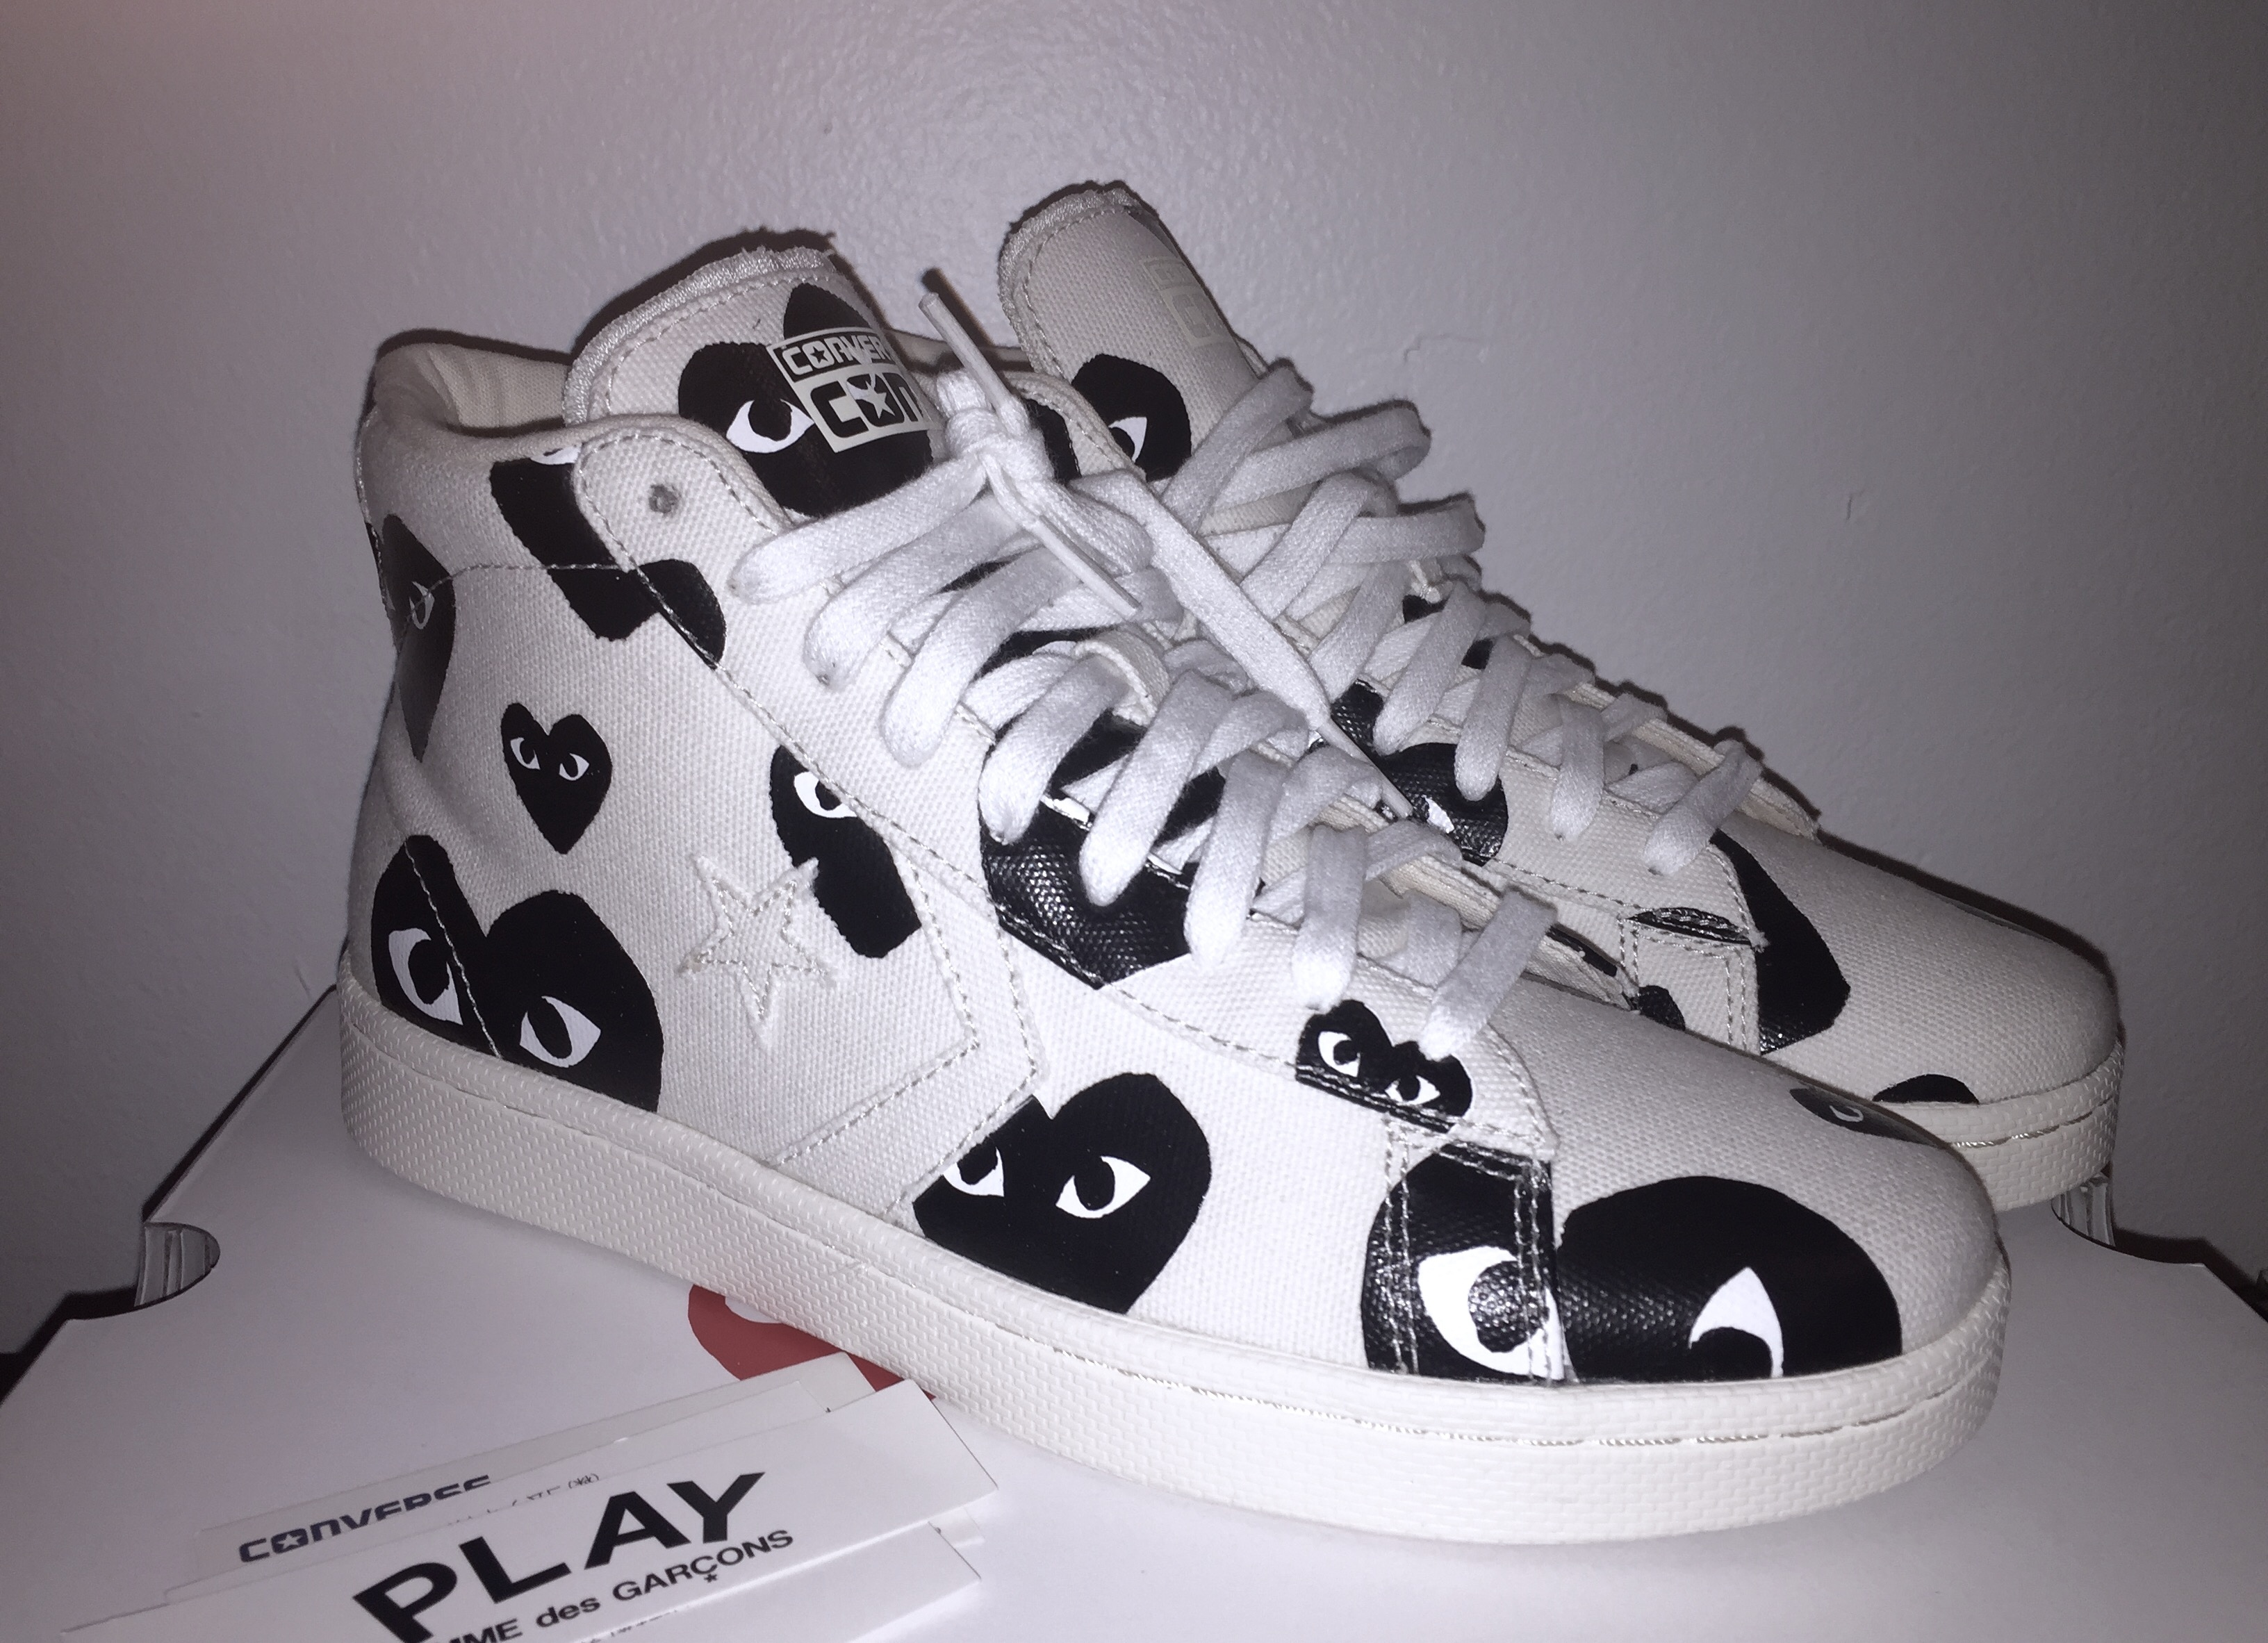 192046cc868f Comme Des Garcons Play Cdg Pro Leather Size 9 - for Sale - Grailed